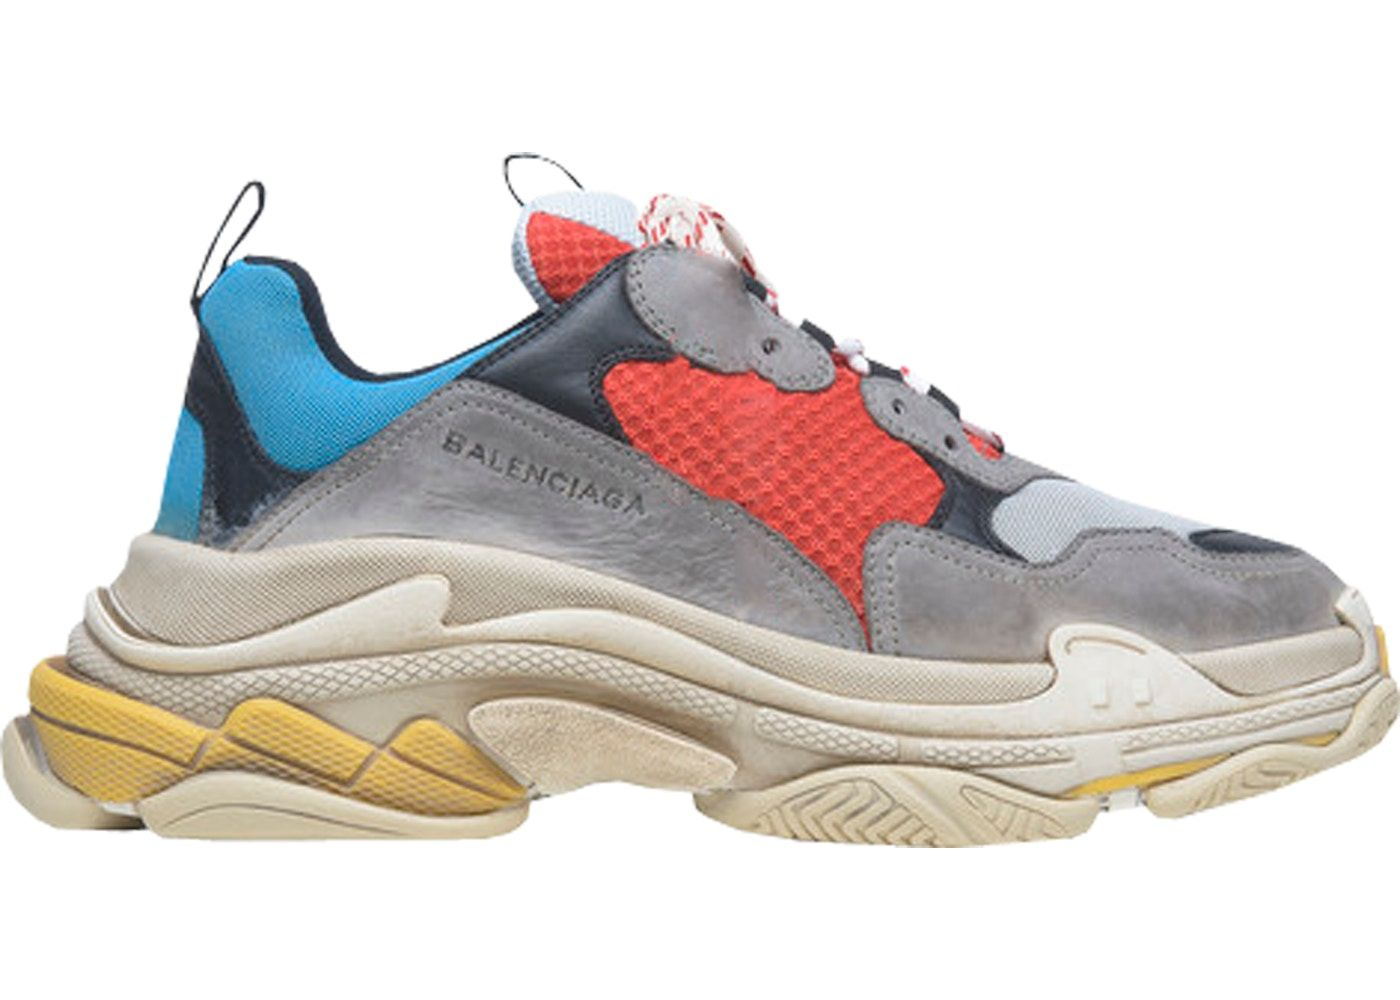 ba411cde641e Balenciaga Triple S Grey Red Blue (2018 Reissue)